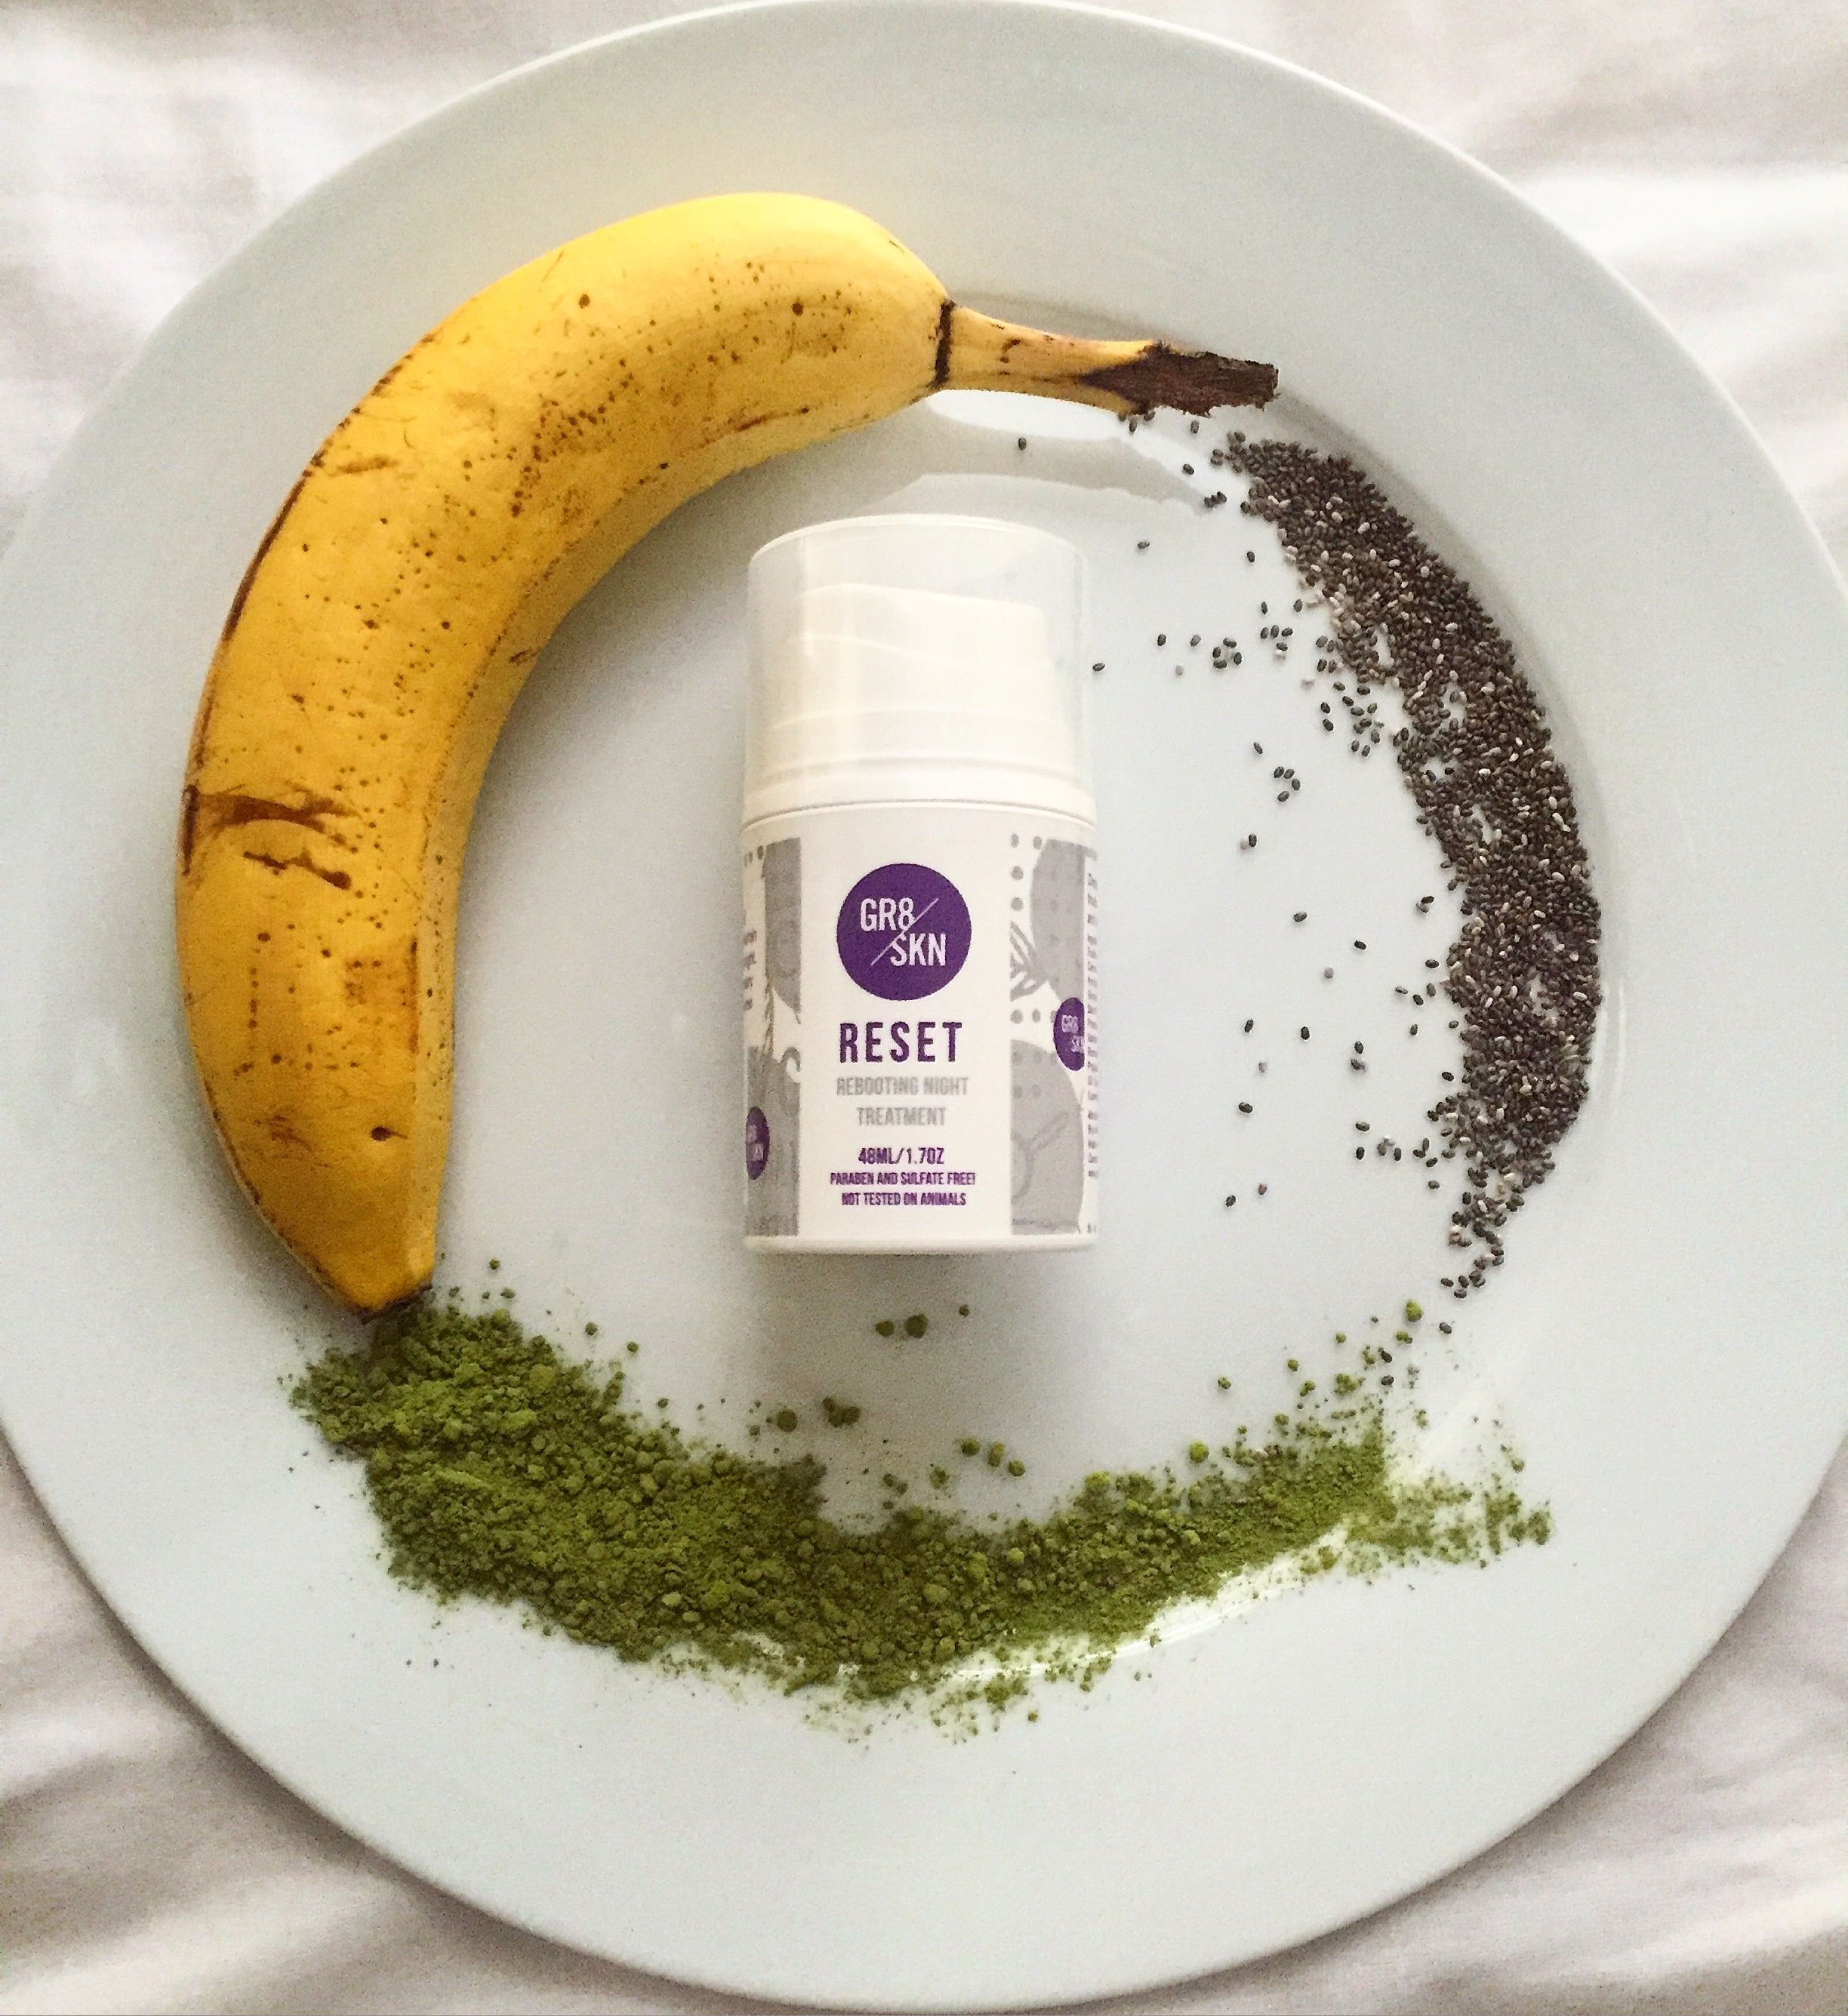 Healthy eating along with a GR8 SKN skincare routine is vital to beautiful skin! I add matcha and chia seeds to my diet along with RESET to my night time skincare routine!